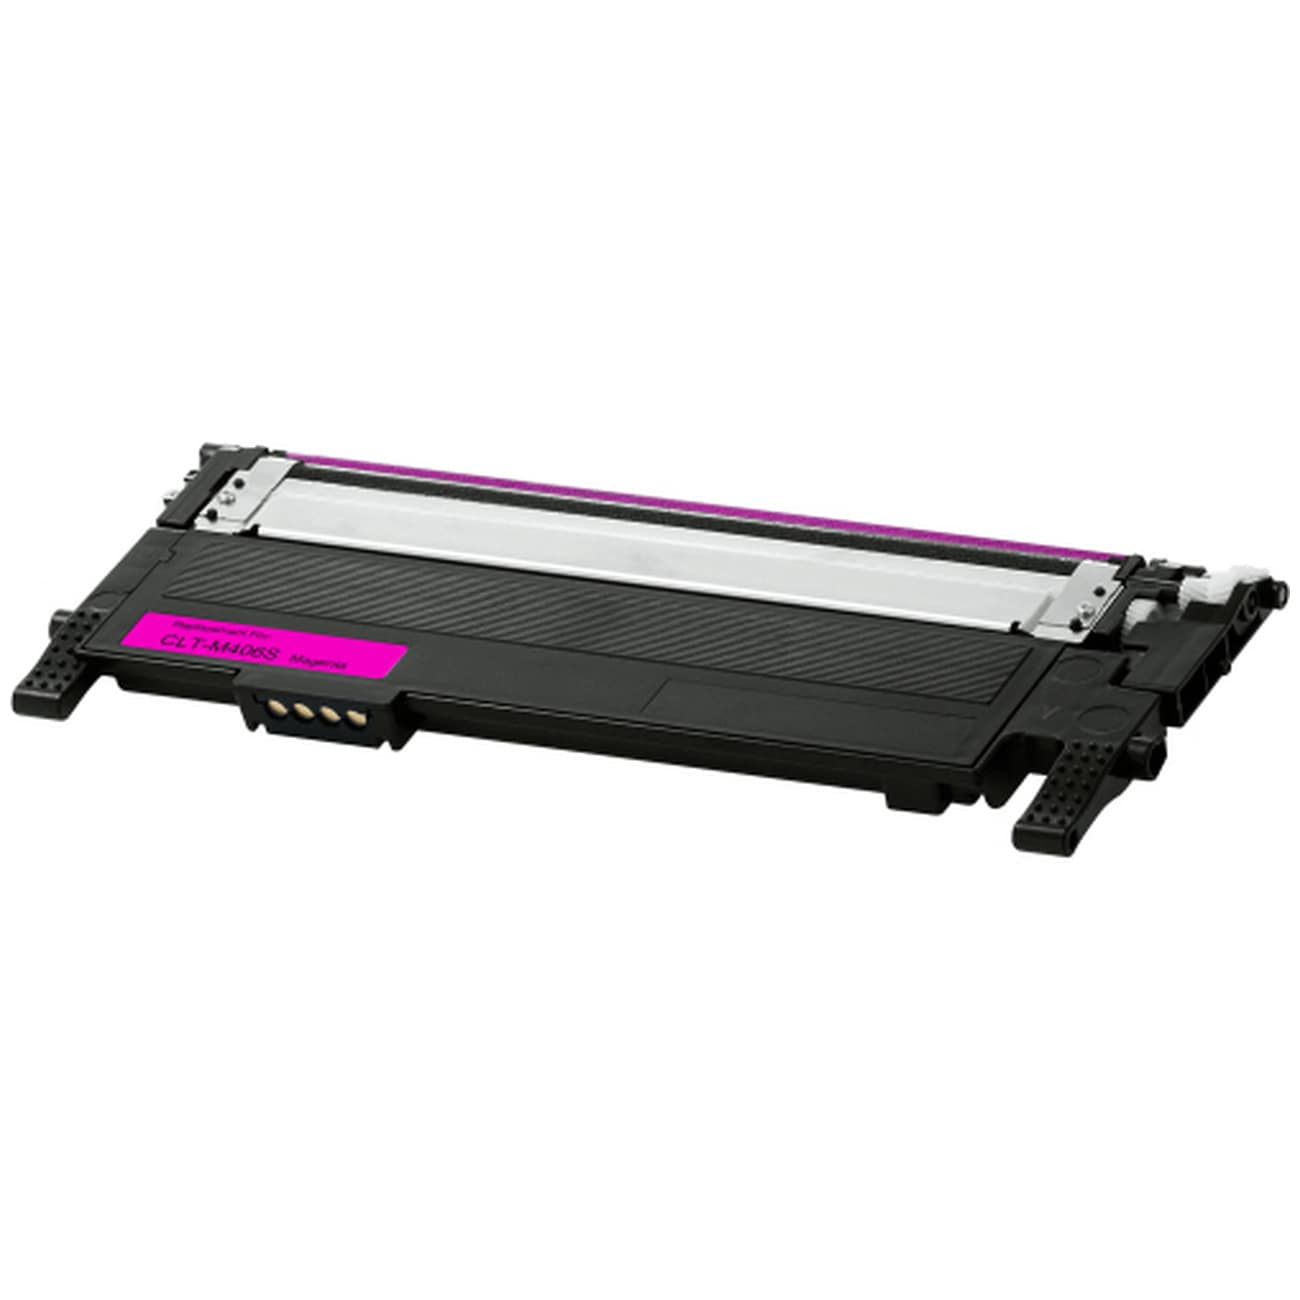 CLT-M406S Toner Cartridge - Samsung Remanufactured (Magenta)